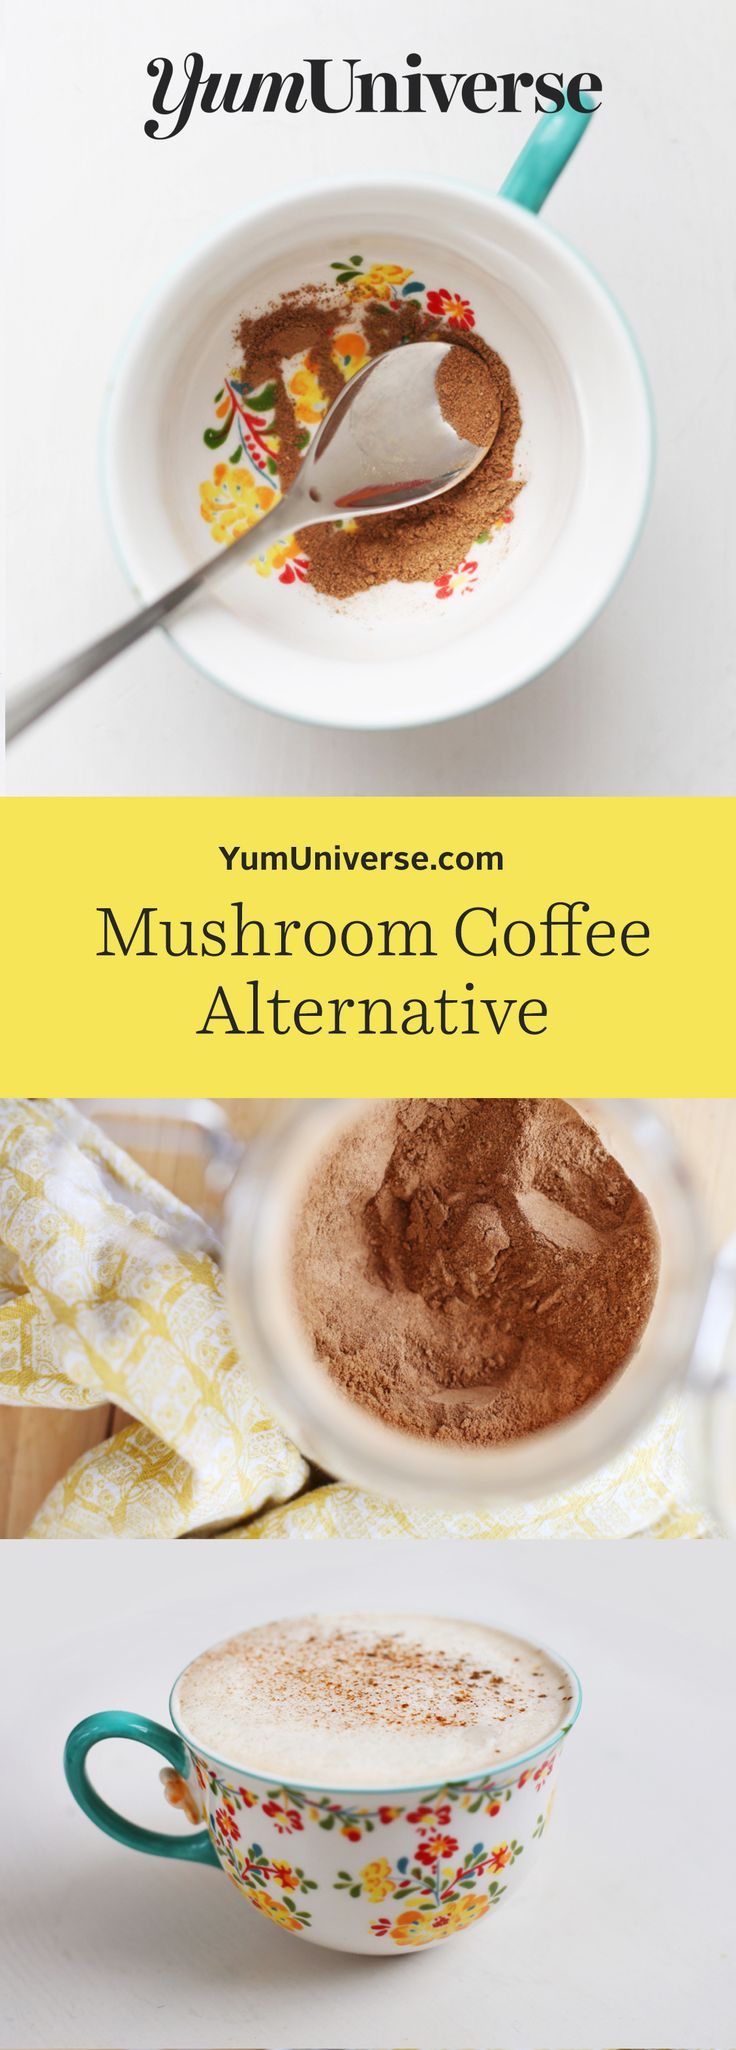 Jj Royal Coffee Cinnamon Latte Bulk Bag 62 Best Milks Images On Pinterest Vegan Recipes Vegetarian Food Make Your Own Mushroom Notcoffee Alternative With This Recipe From Yumuniverse